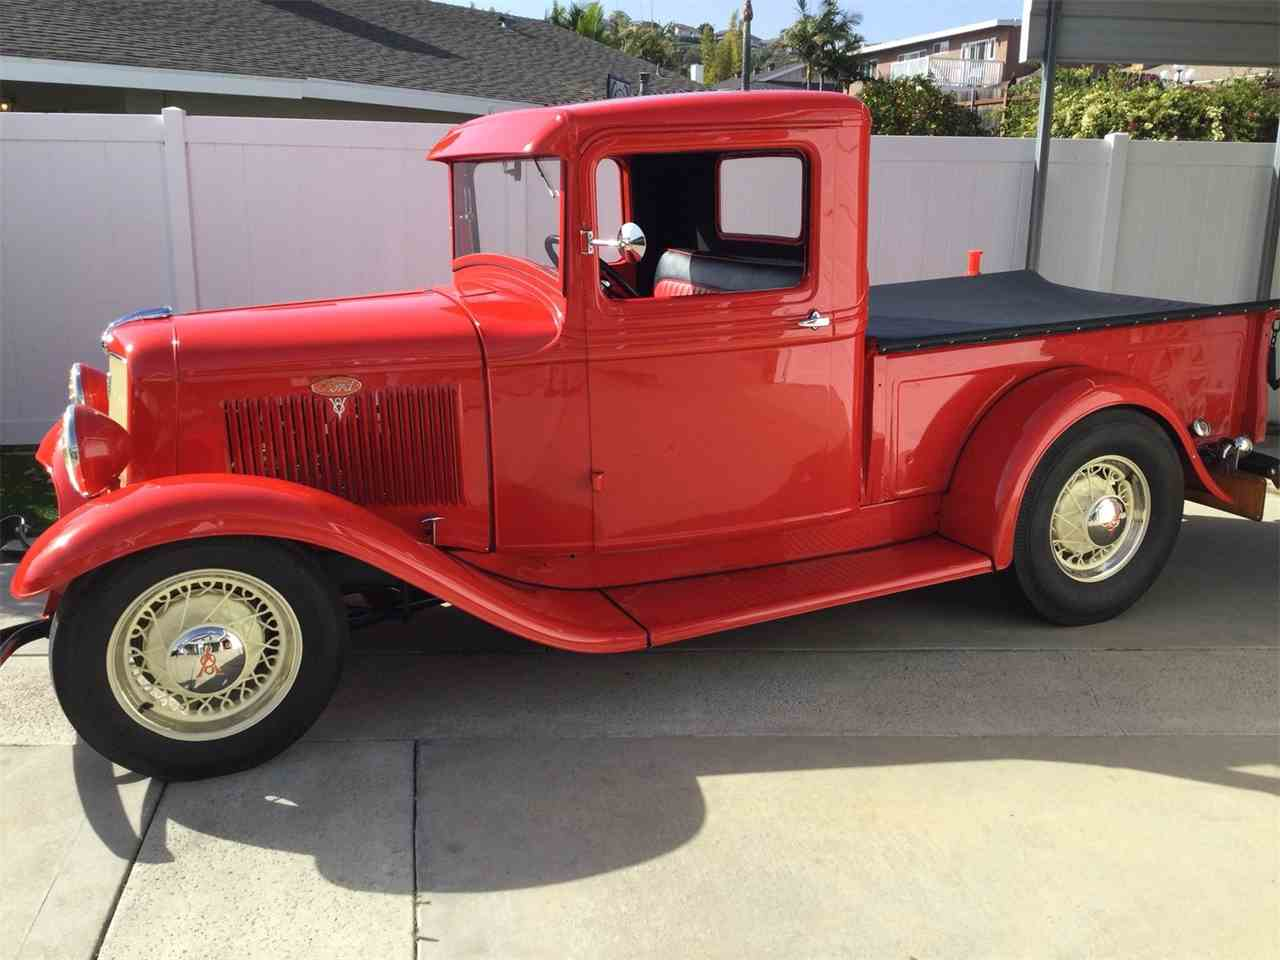 1934 Ford Pickup for Sale   ClassicCars.com   CC-1065027